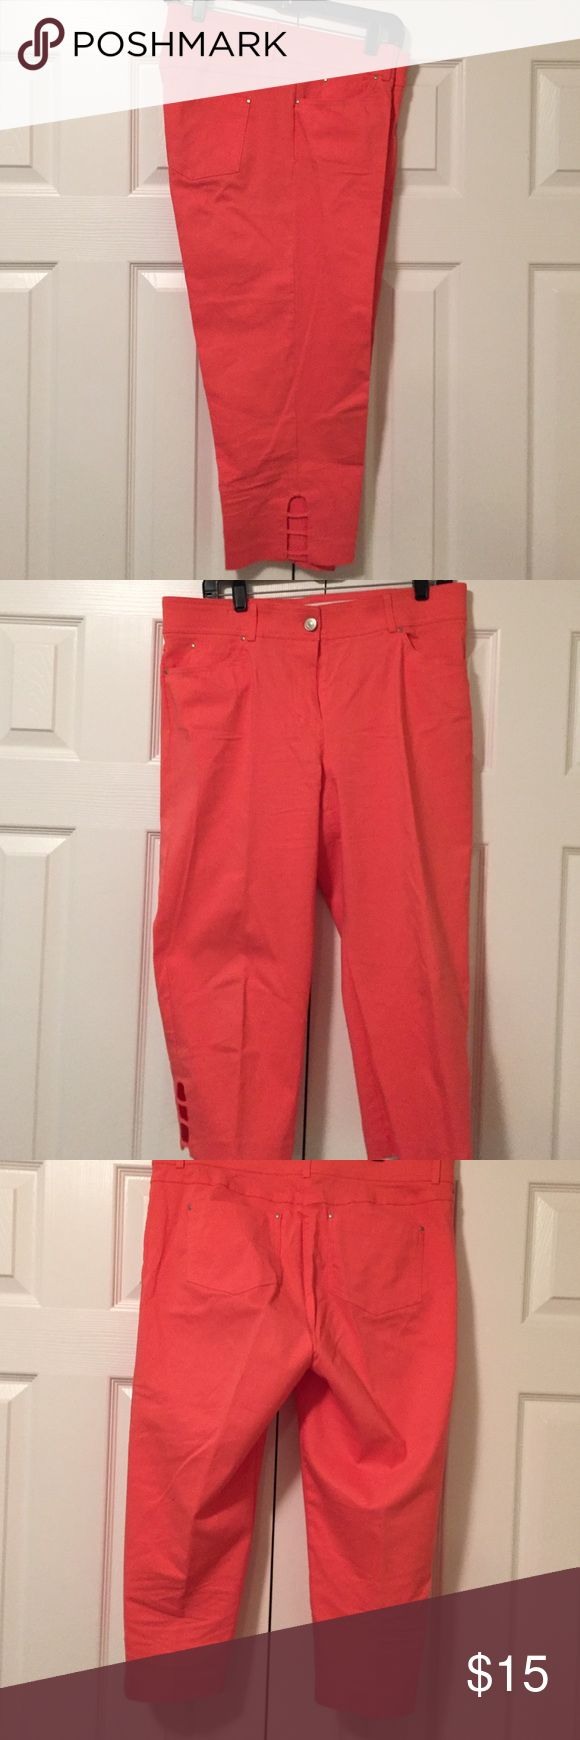 Beautiful coral Capri Beautiful coral Capri, hugs curves well! Very comfortable. Rayon/nylon/spandex blend. Front and back pockets. Bottom of pants have cute peek-a-boo window slits, giving them that extra flare! Spring/summer must have! Verve Pants Capris